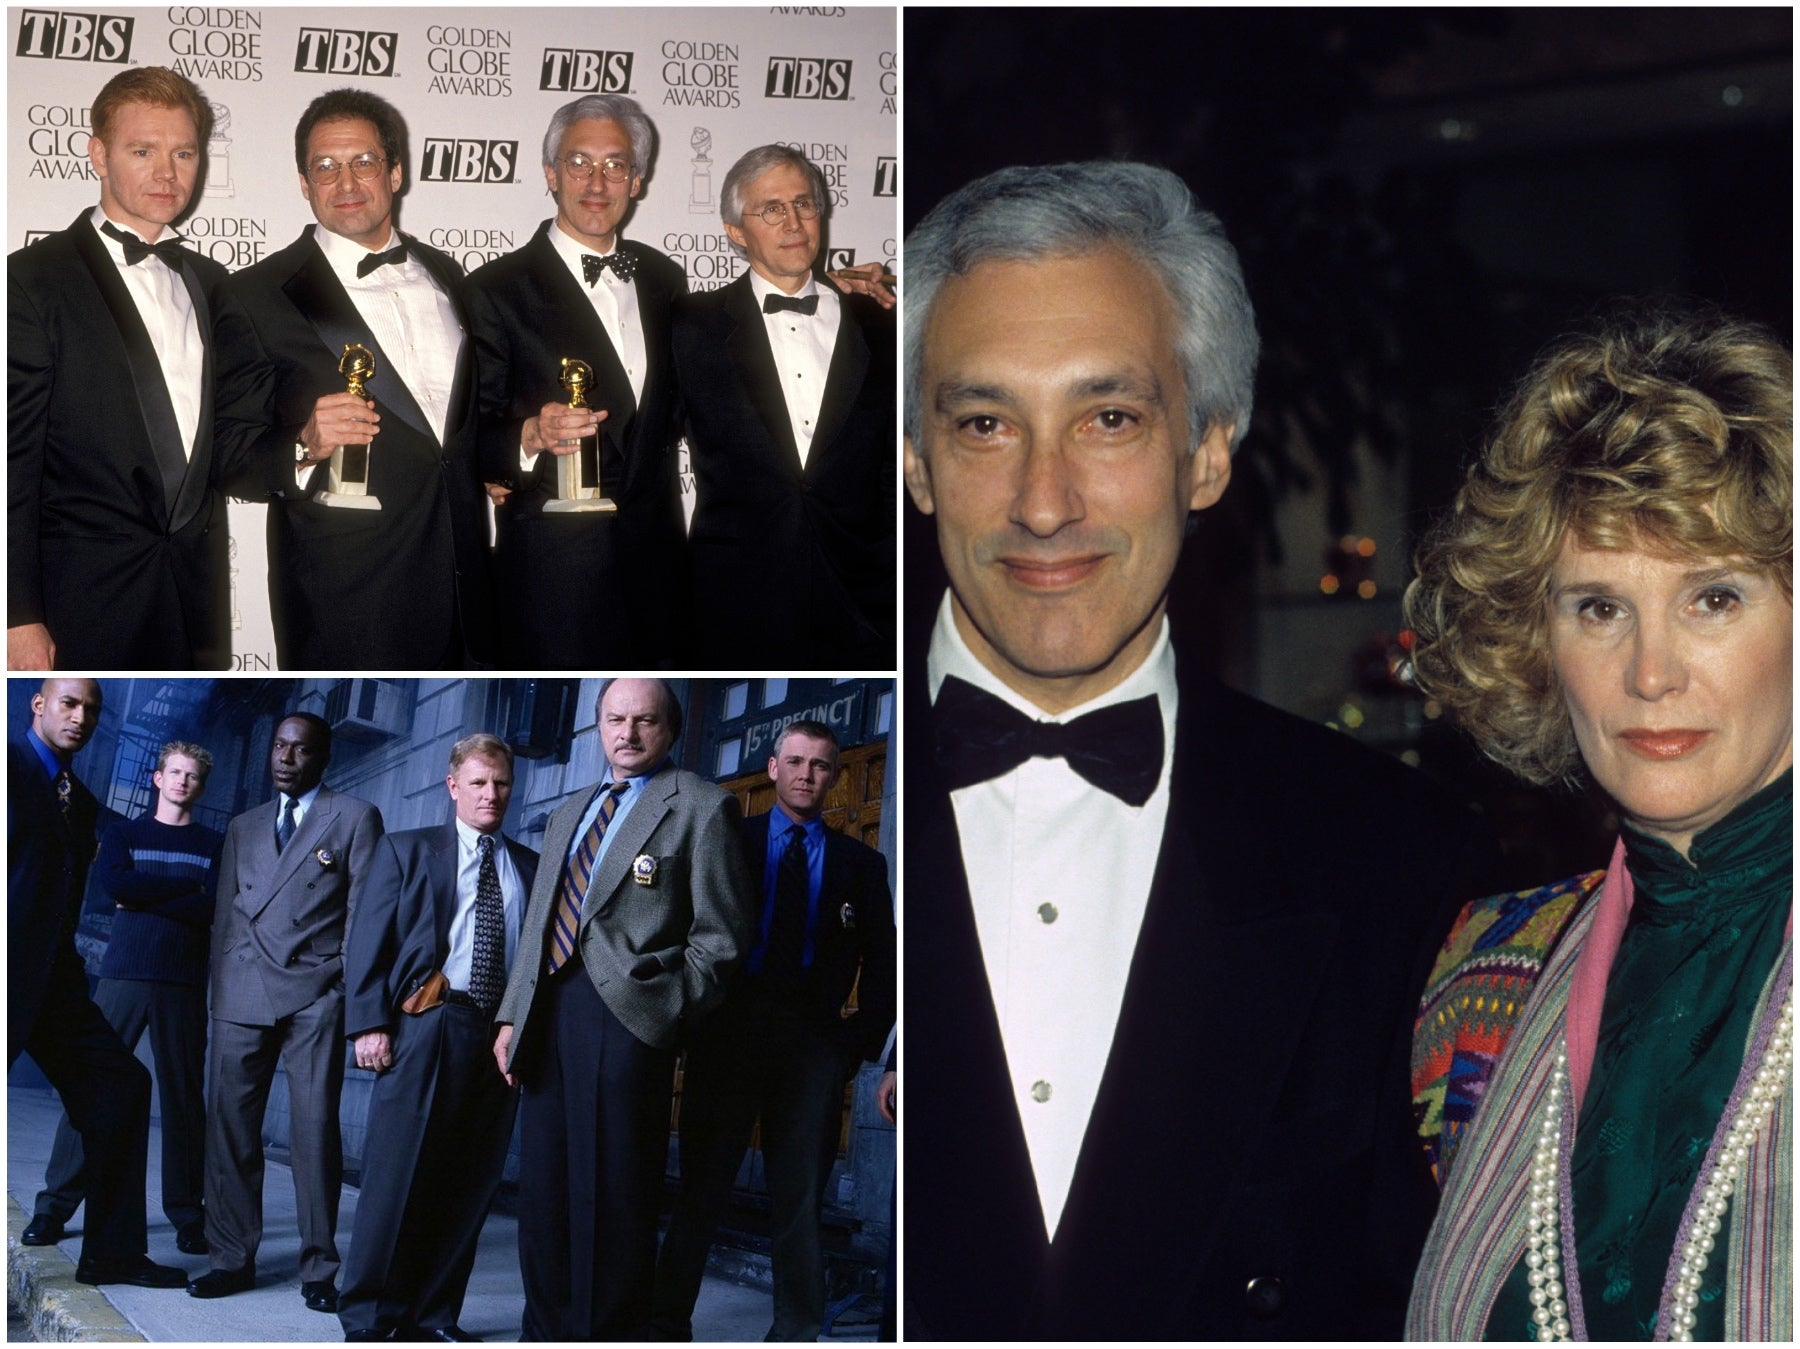 the cast and Golden Globes of NYPD Blue